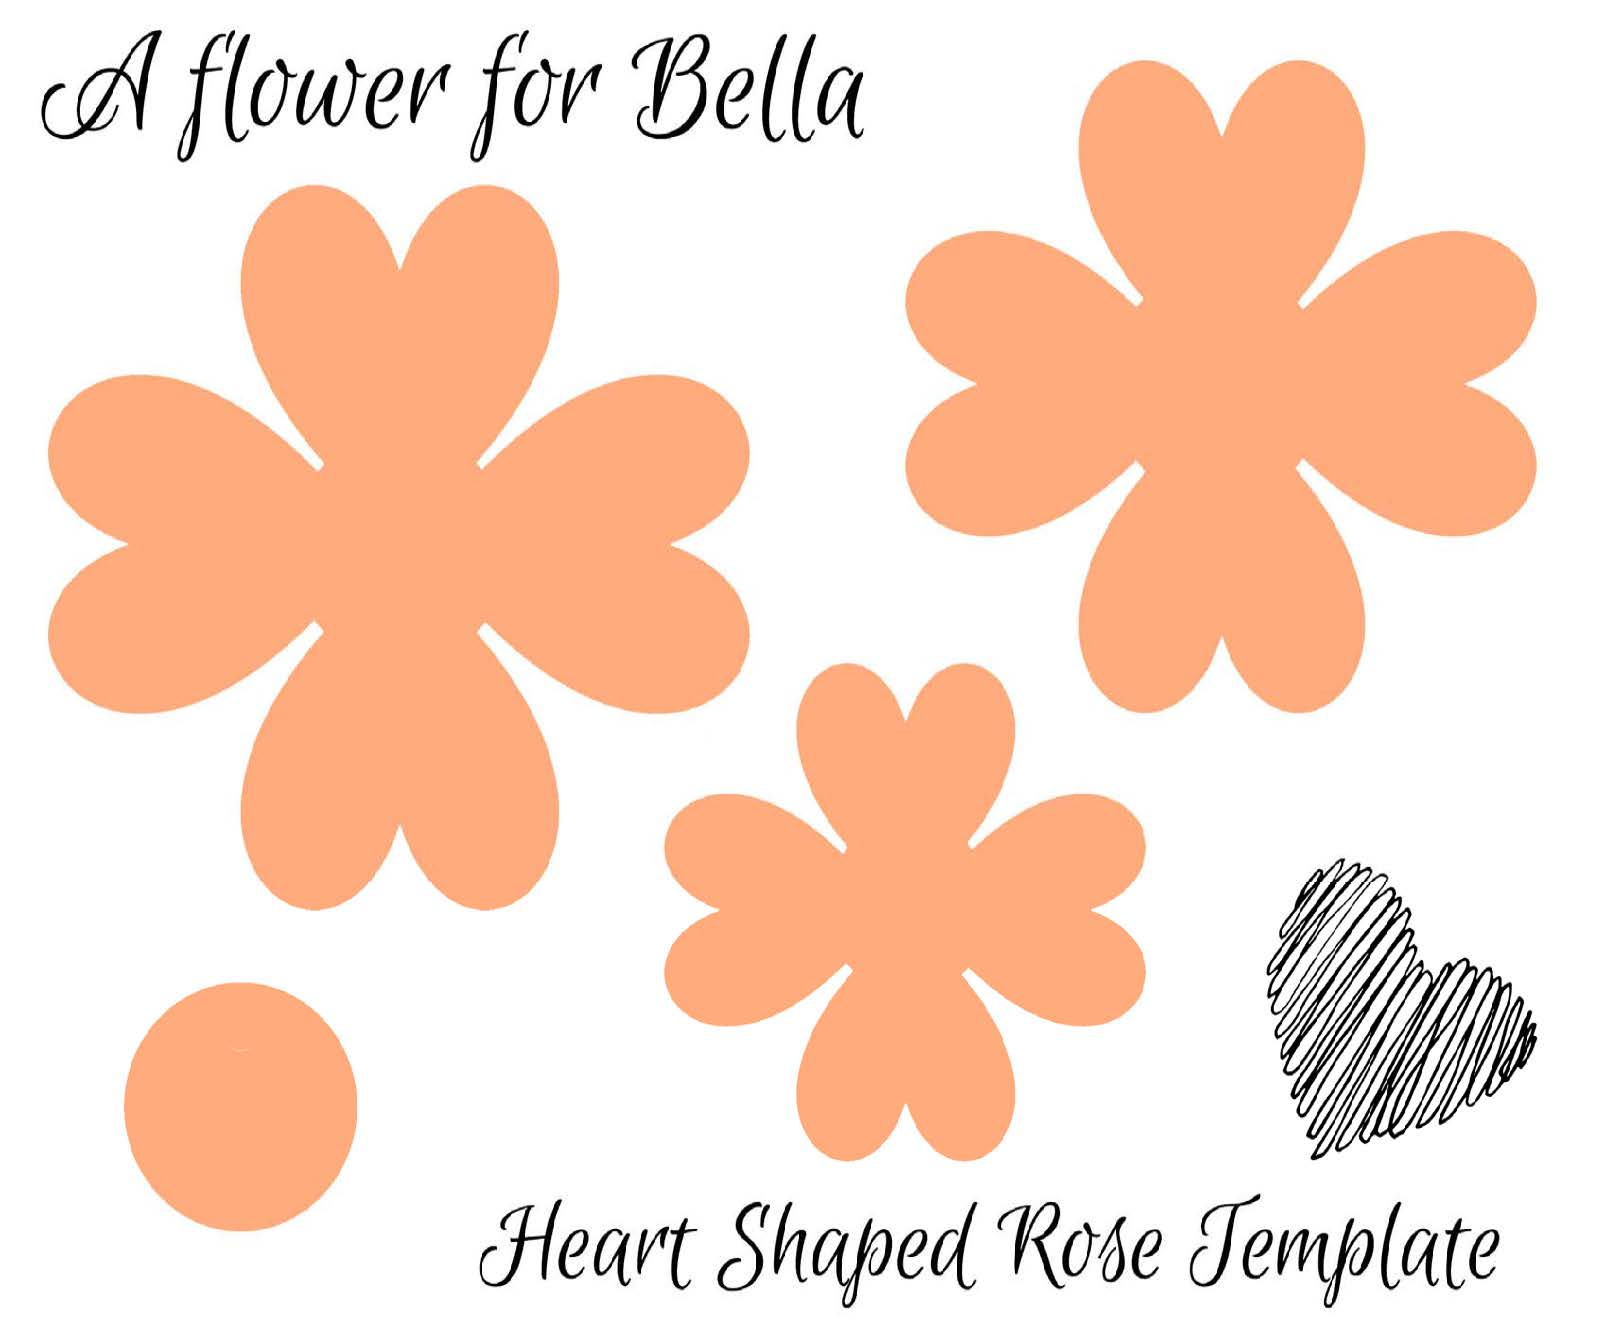 Heart Shaped Rose Template Download